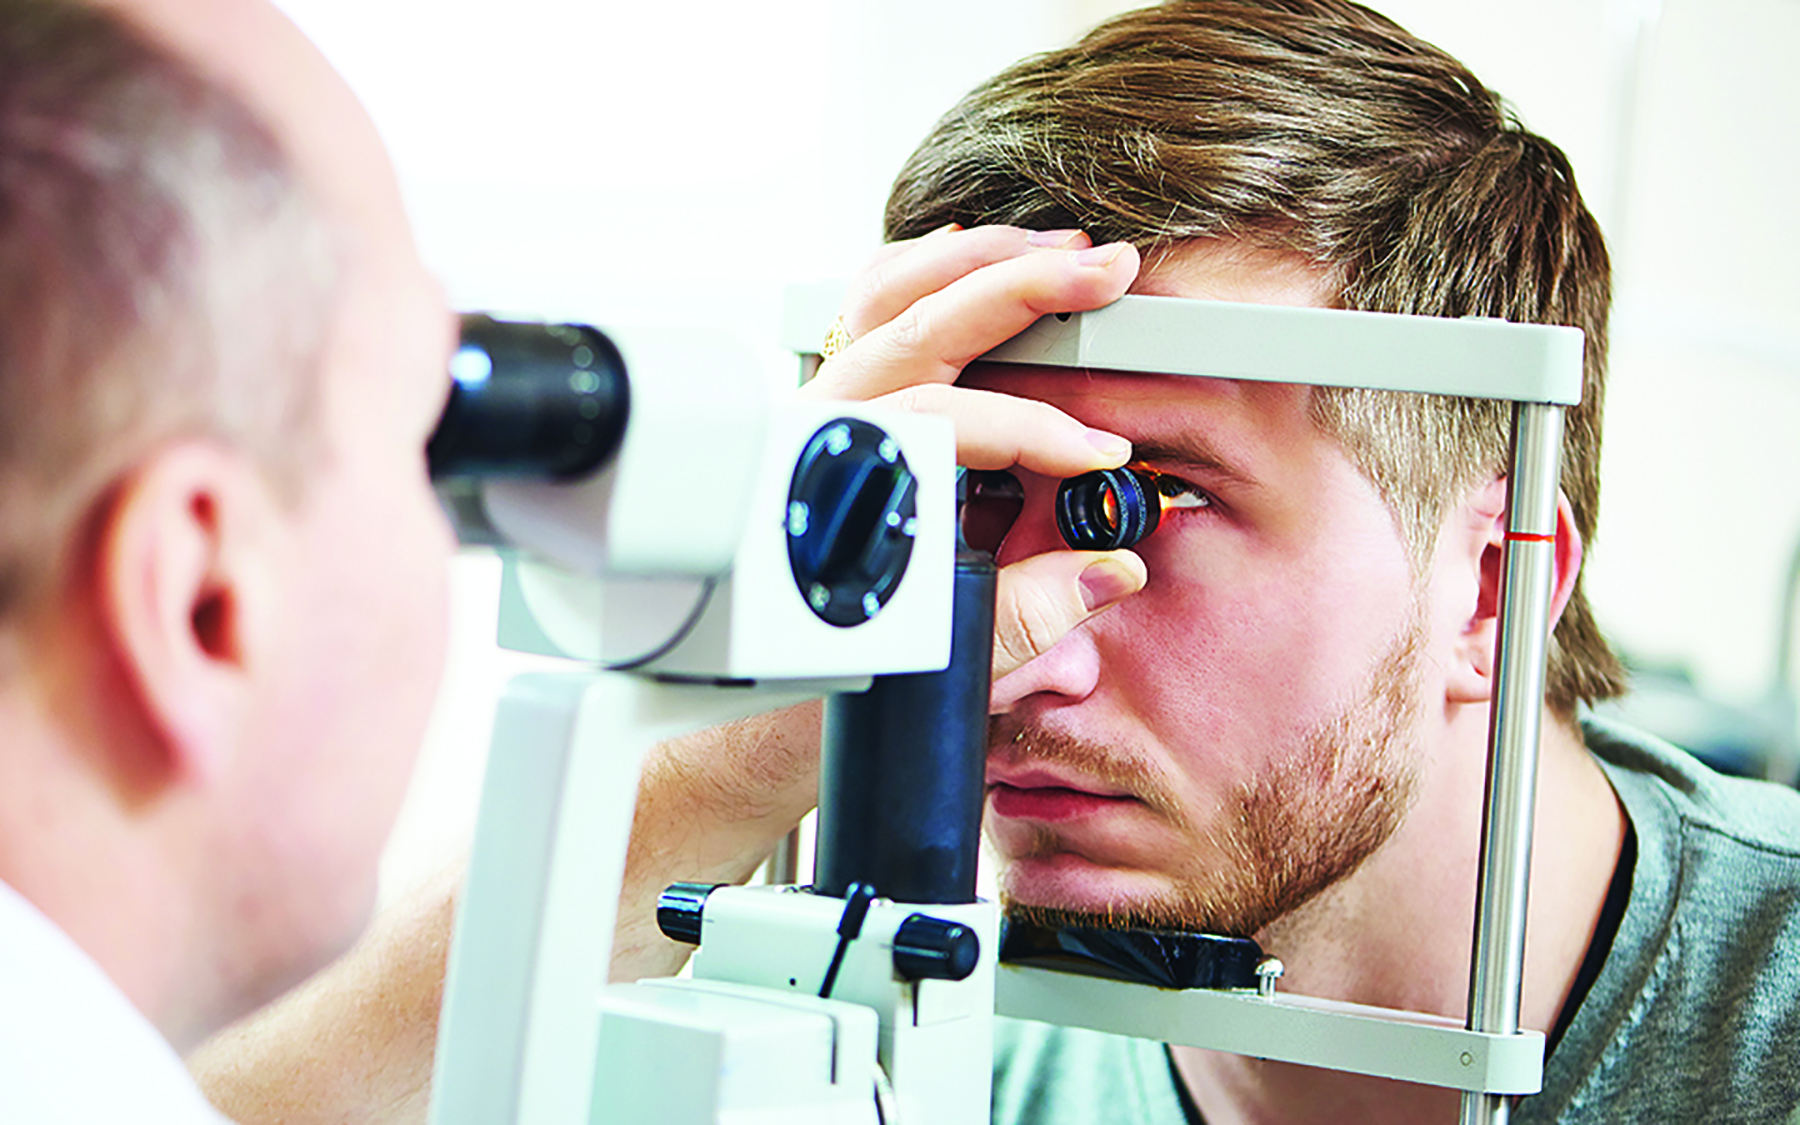 Courtesy uhhospitals.org &nbsp&nbsp Medicare covers a glaucoma test once every 12 months for people at high risk for glaucoma. Be sure to have annual eye exams and catch it early.